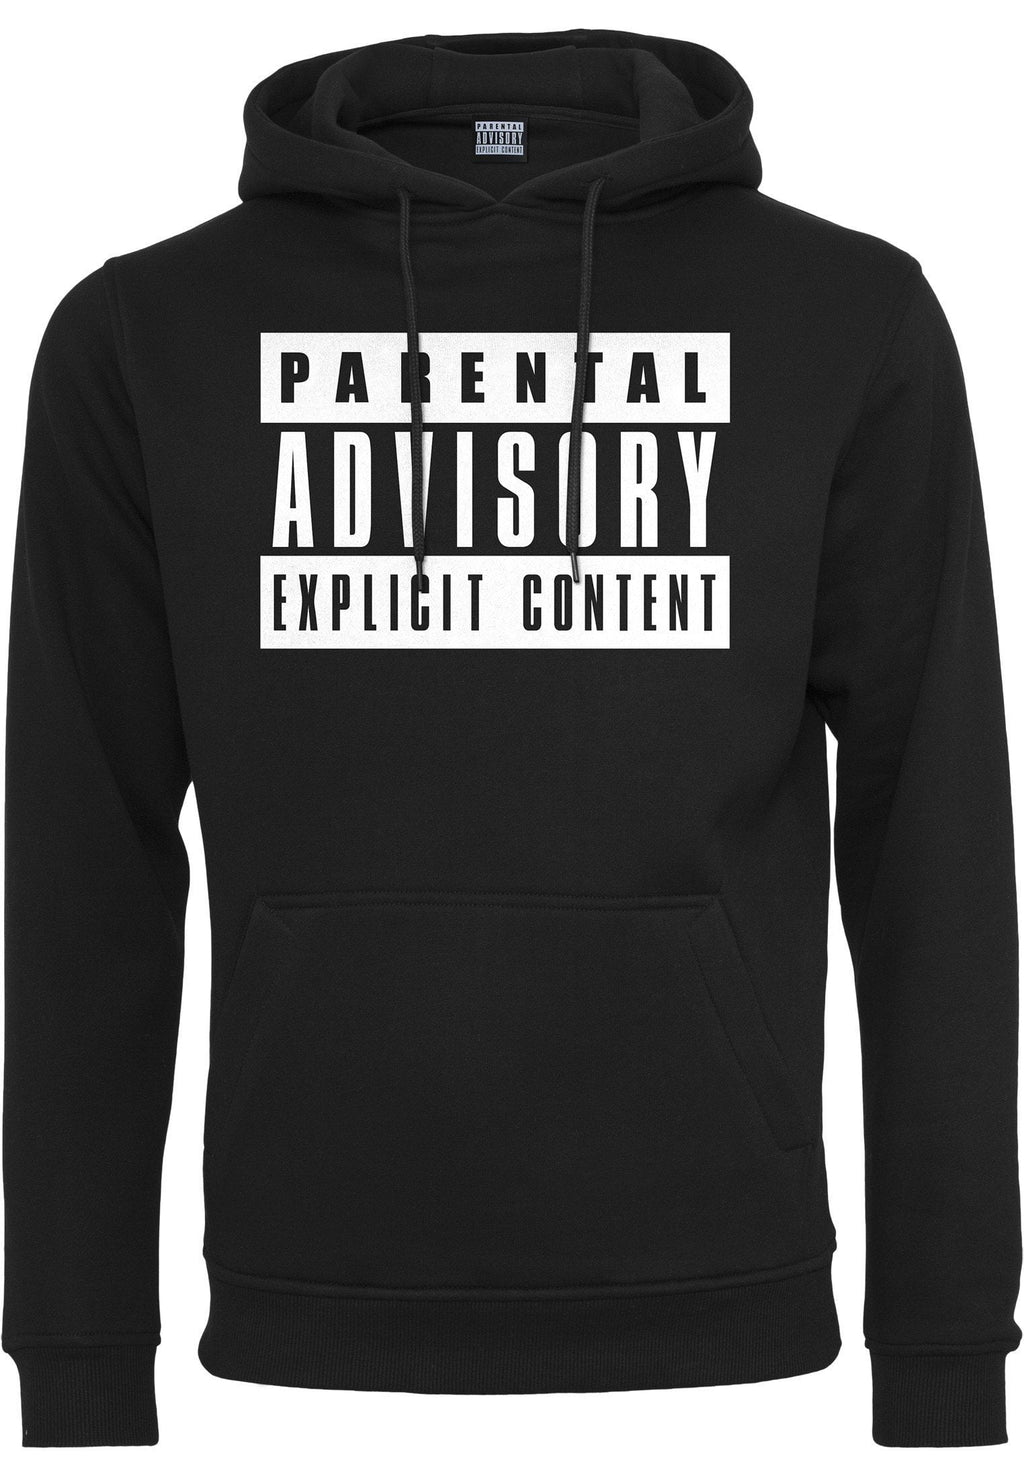 Parental Advisory Hoody - Black